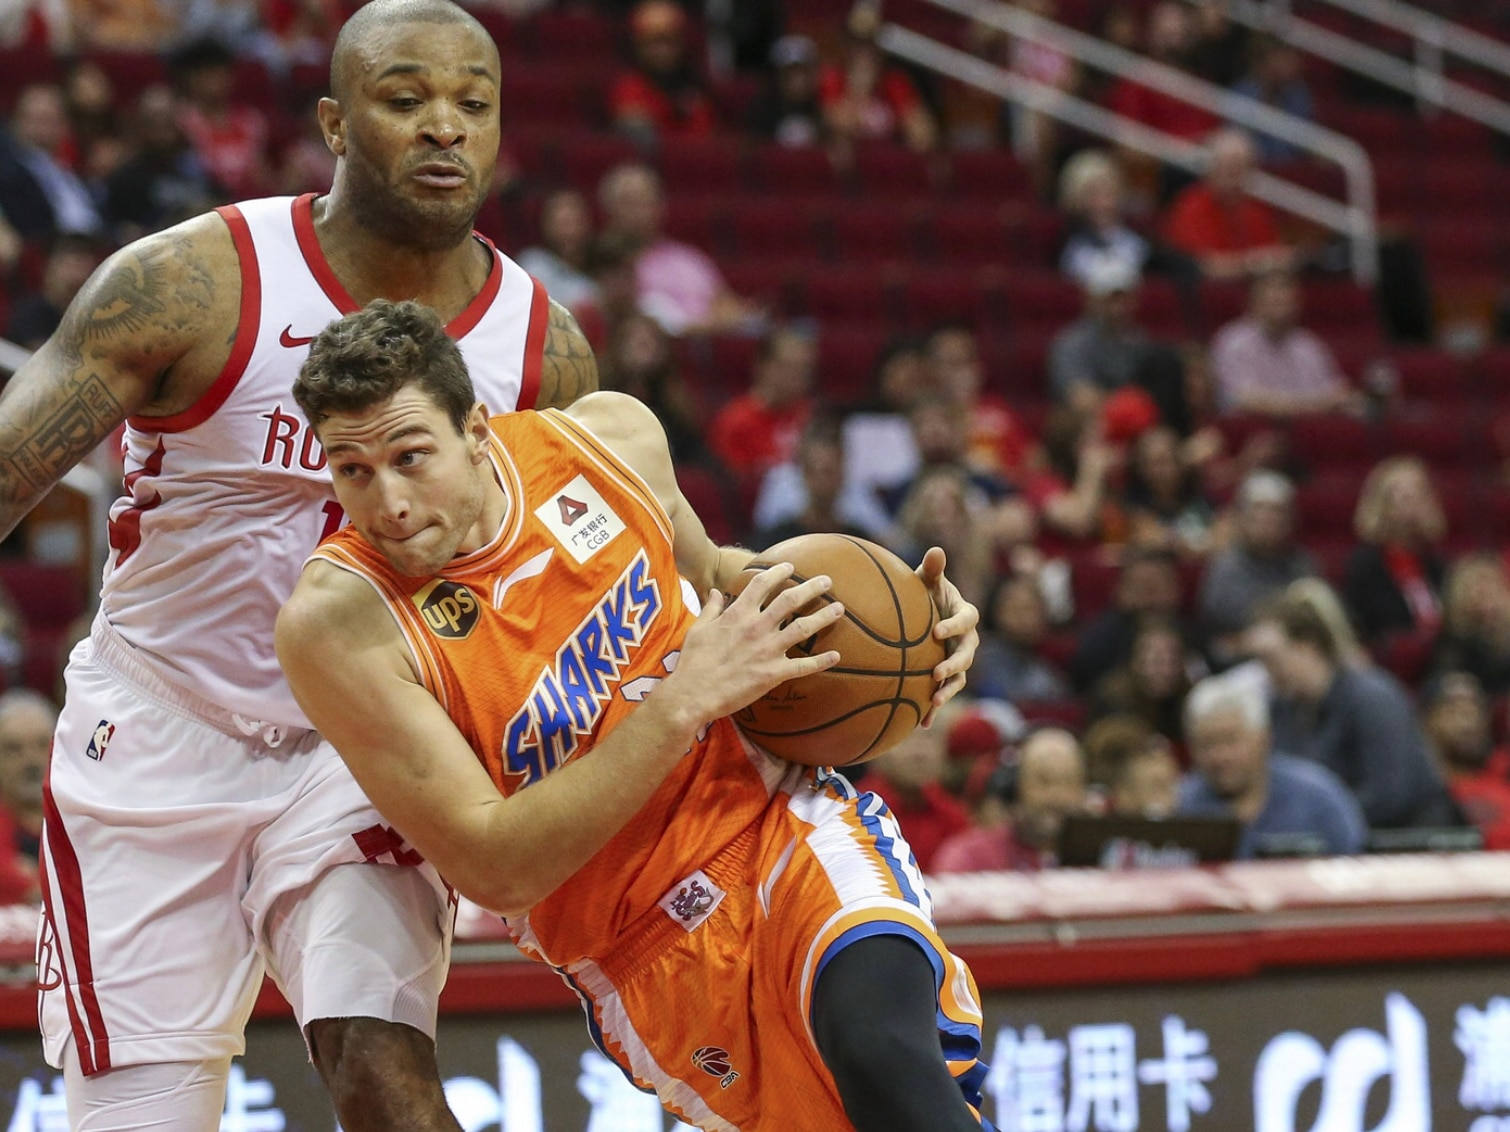 Devin Booker drops 50 points (again) vs. Wizards in historic outing